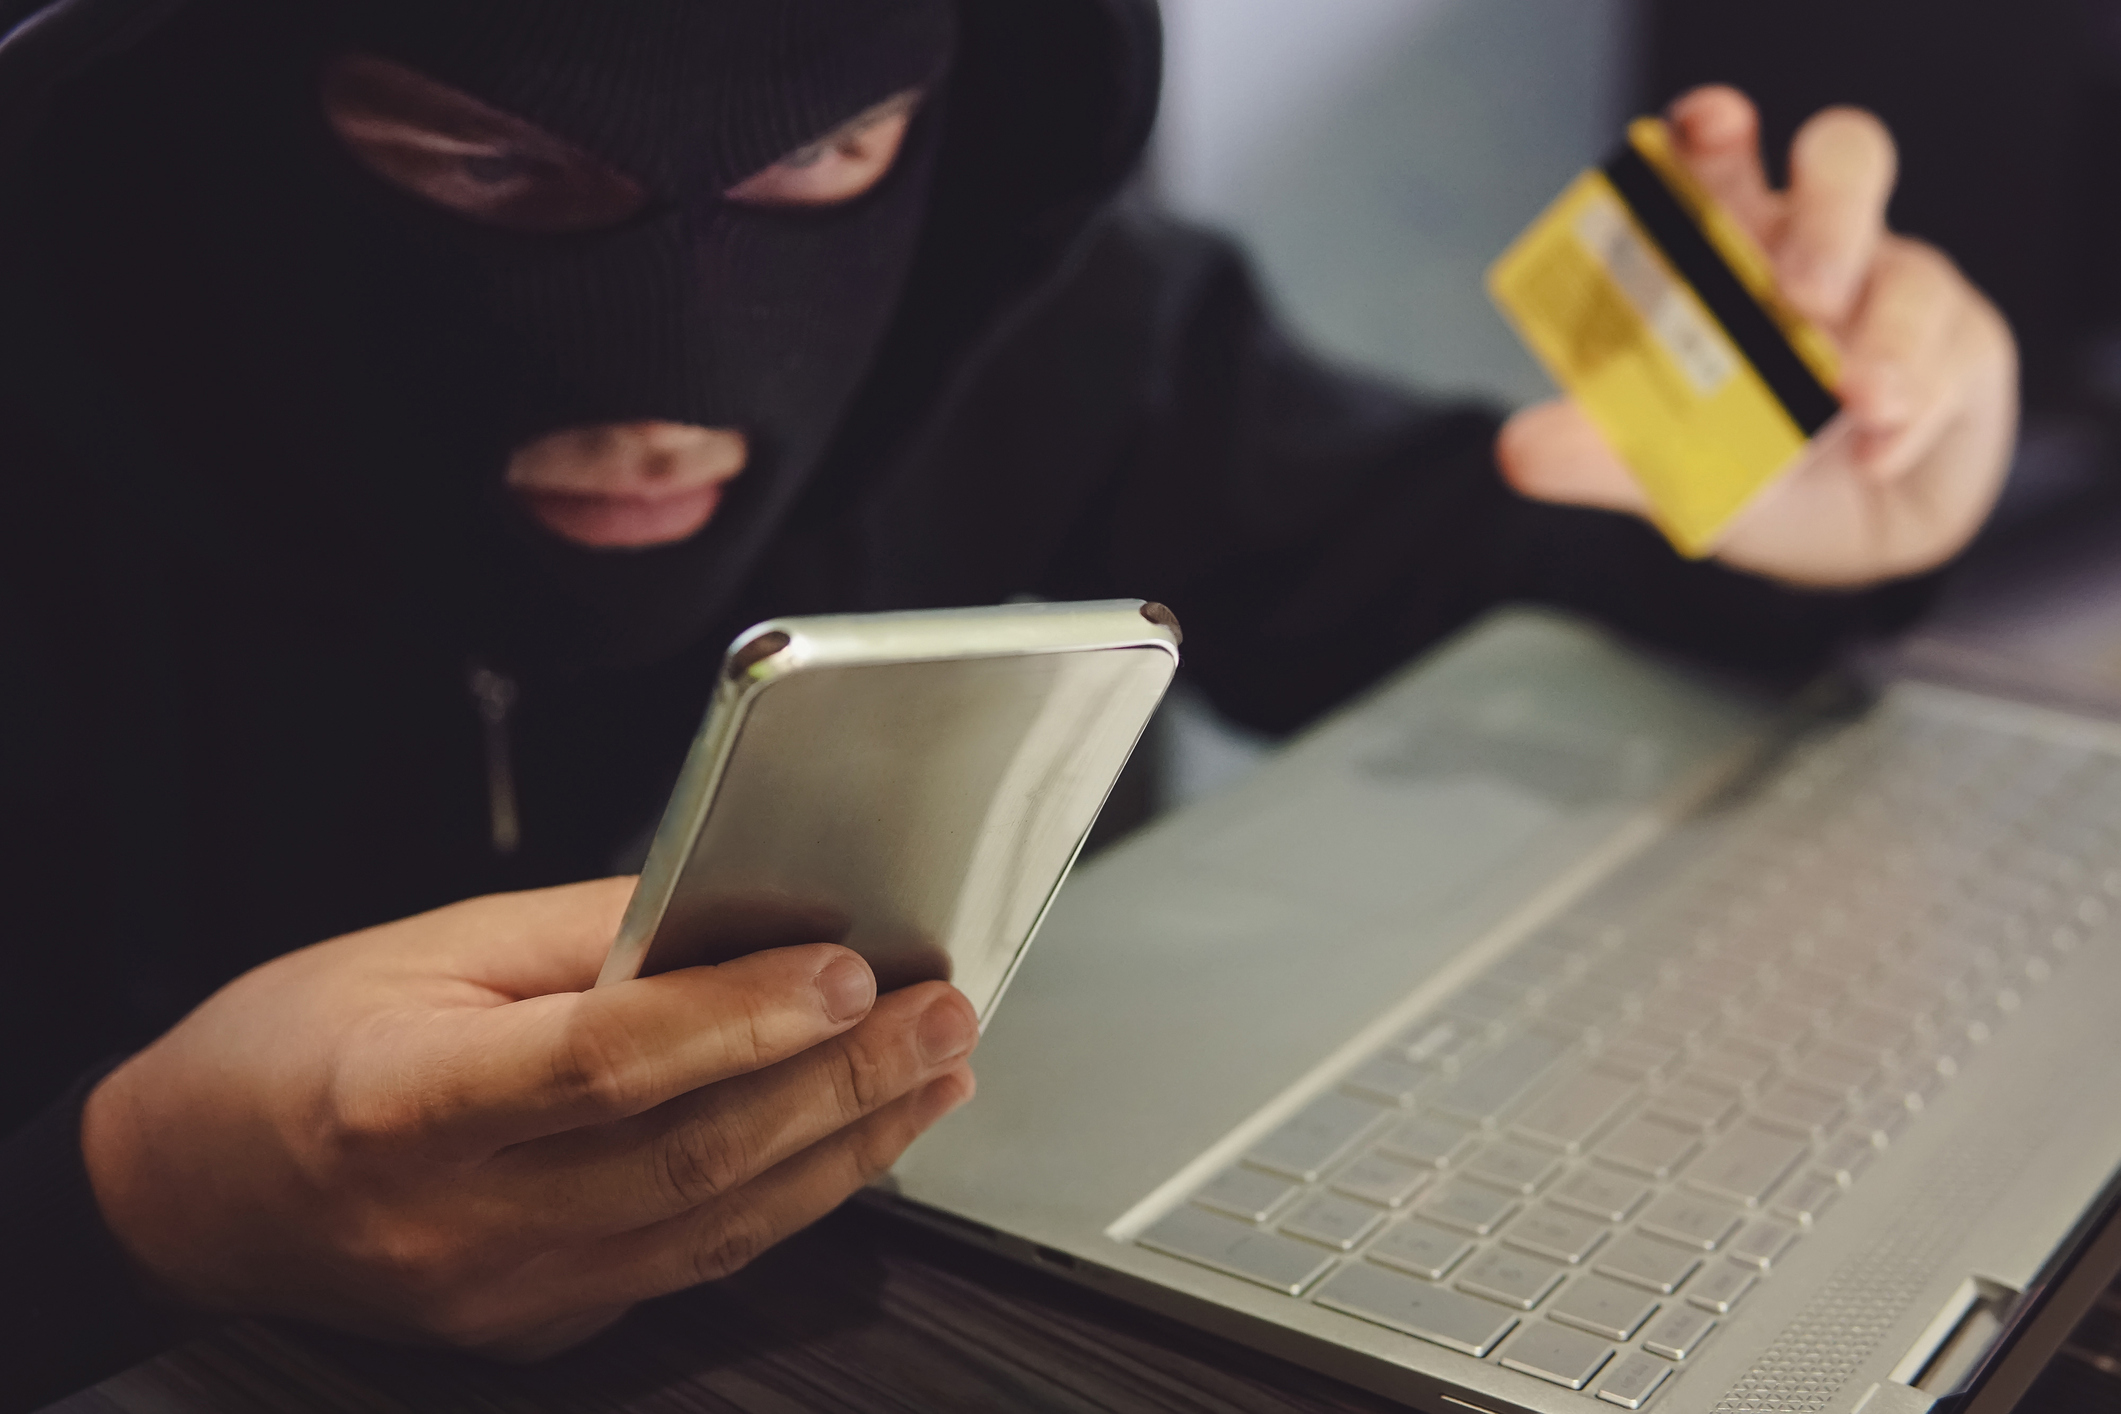 Male hacker in a robber mask uses phone, credit card and laptop in some fraudulent scheme. Cyber thief stole the personal data and credit card information. Hacker uses malware to steal user's money